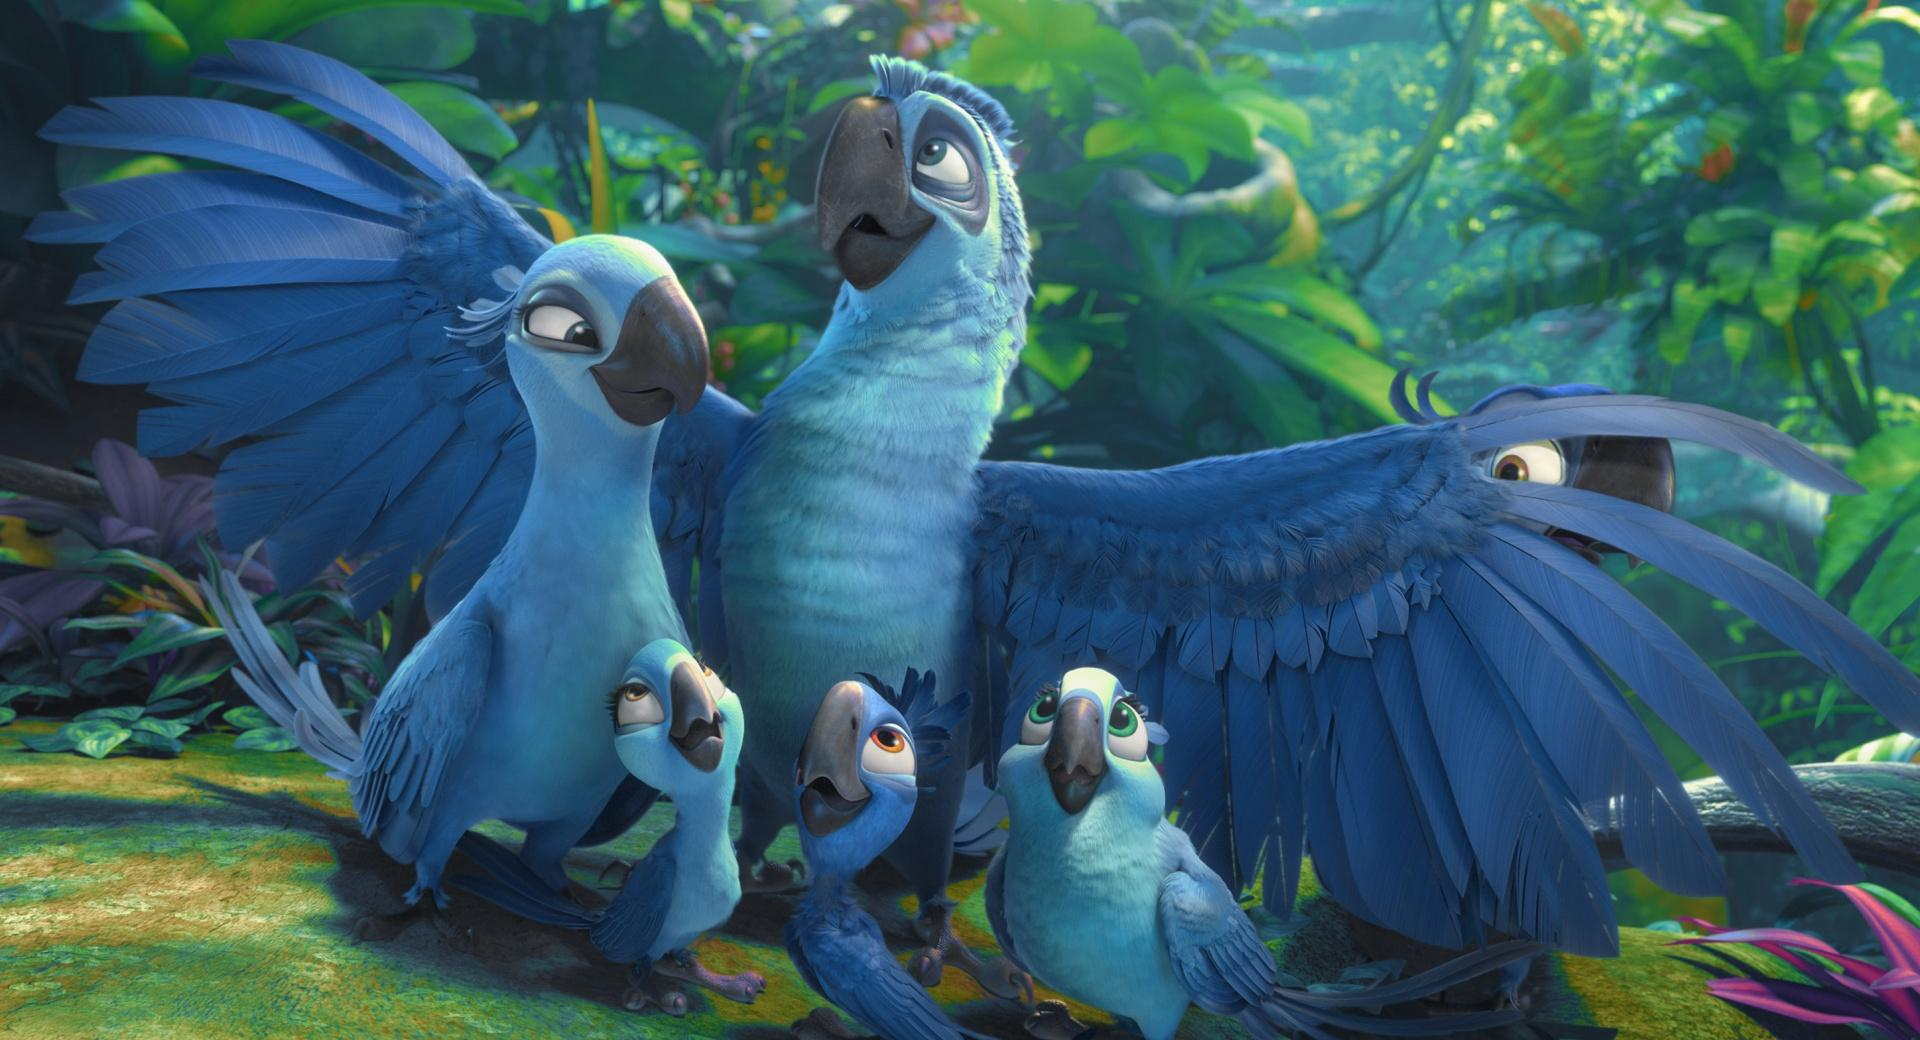 Rio 2 Blu And Jewels Kids wallpapers HD quality